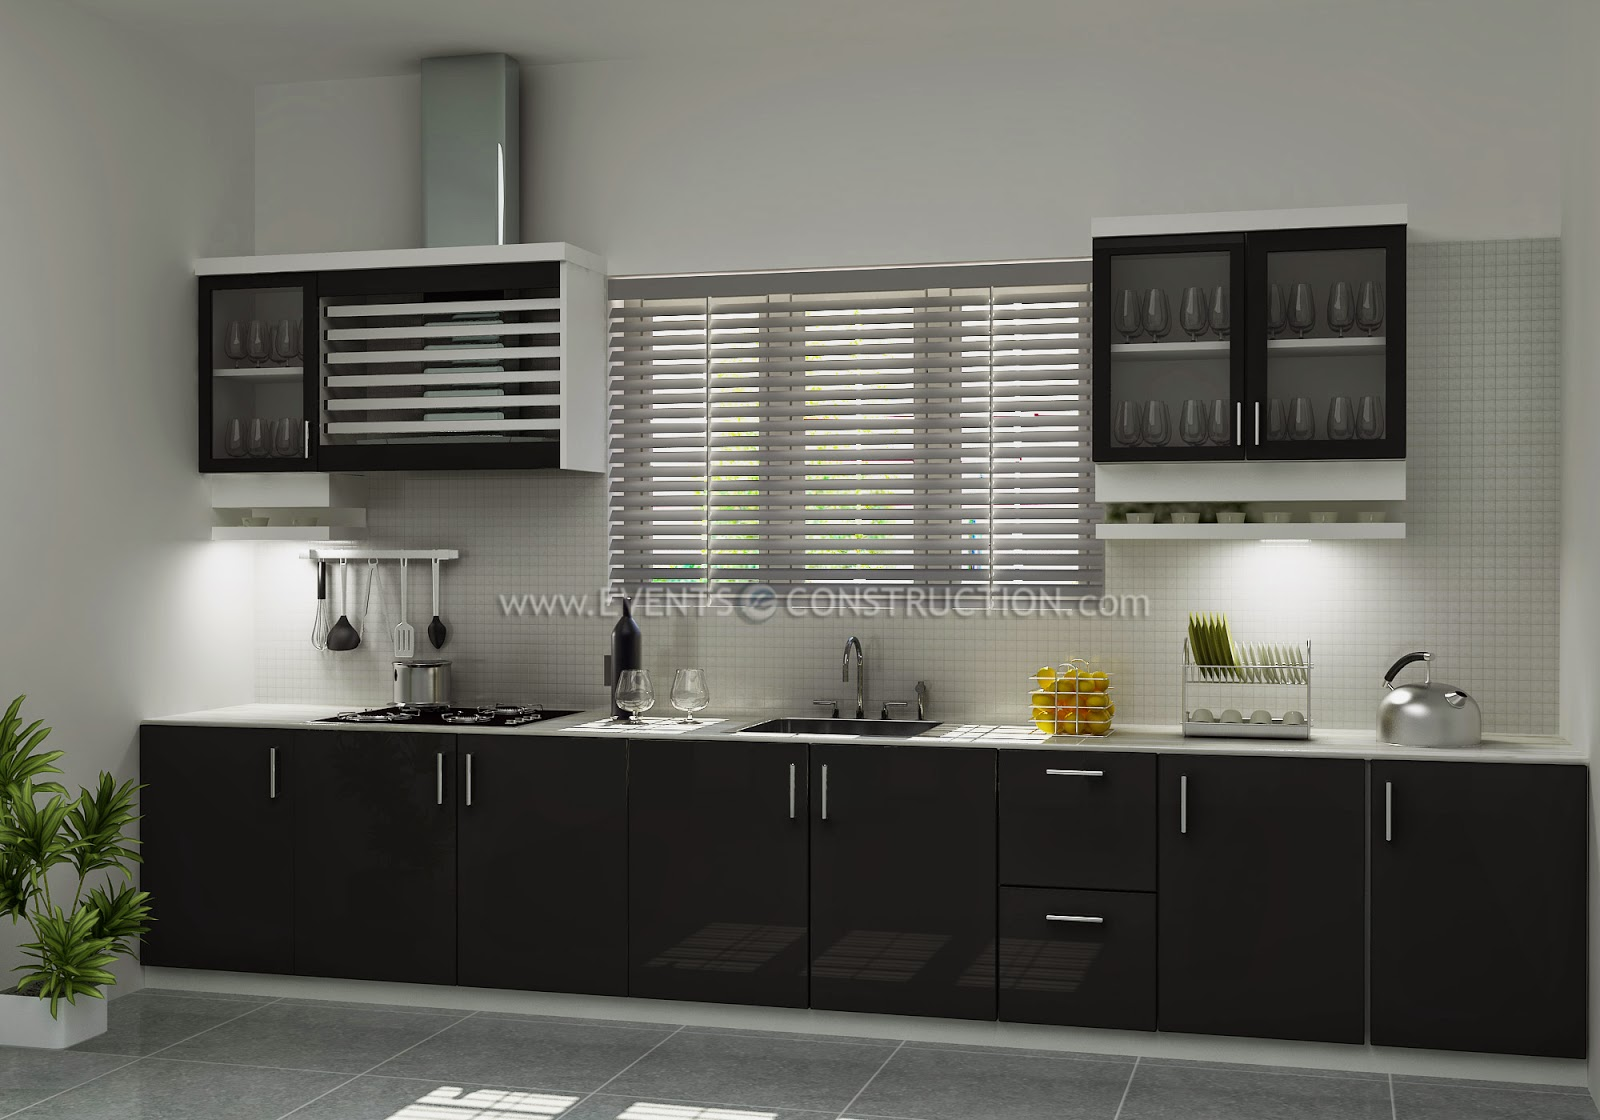 construction pvt ltd simple and small kerala kitchen interior design